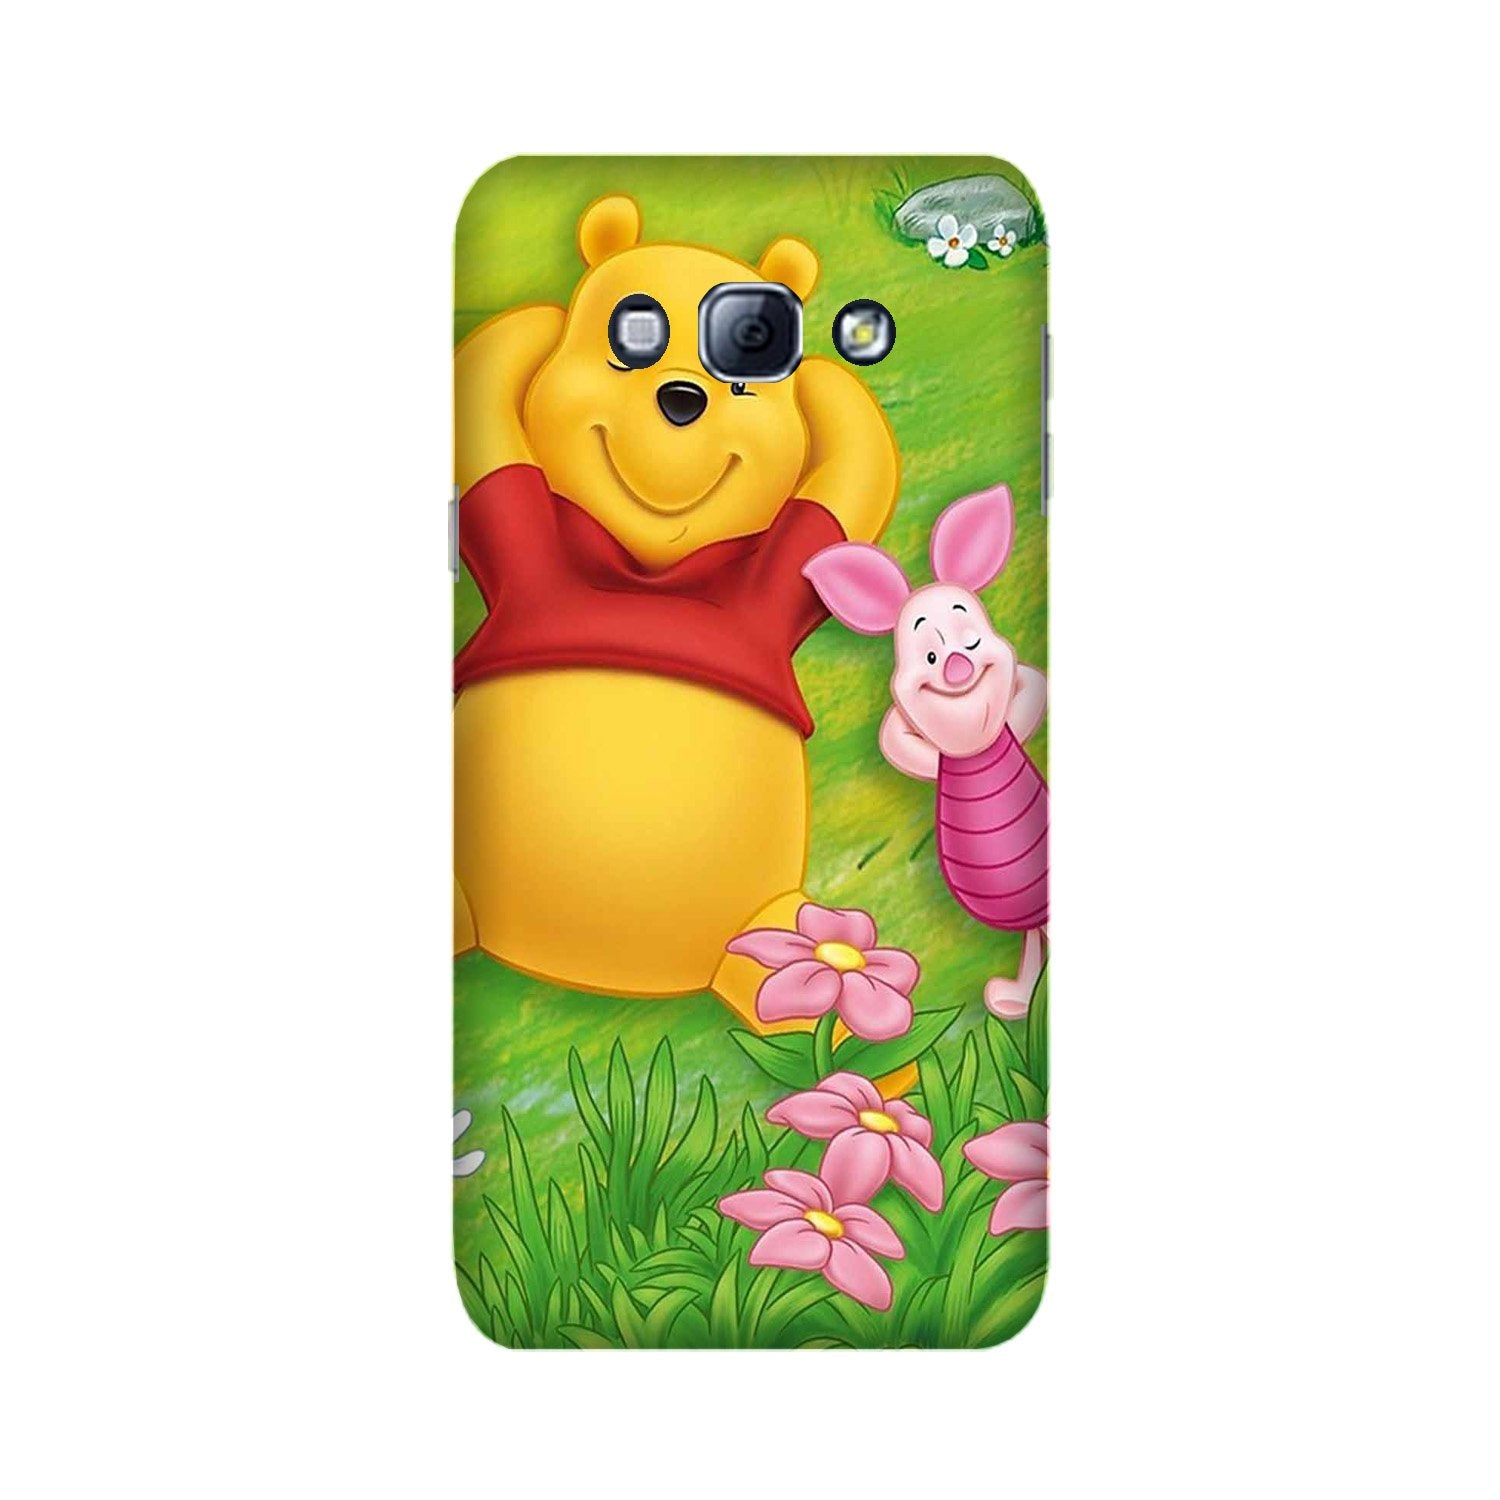 Winnie The Pooh Mobile Back Case for Galaxy A8 (2015)  (Design - 348)